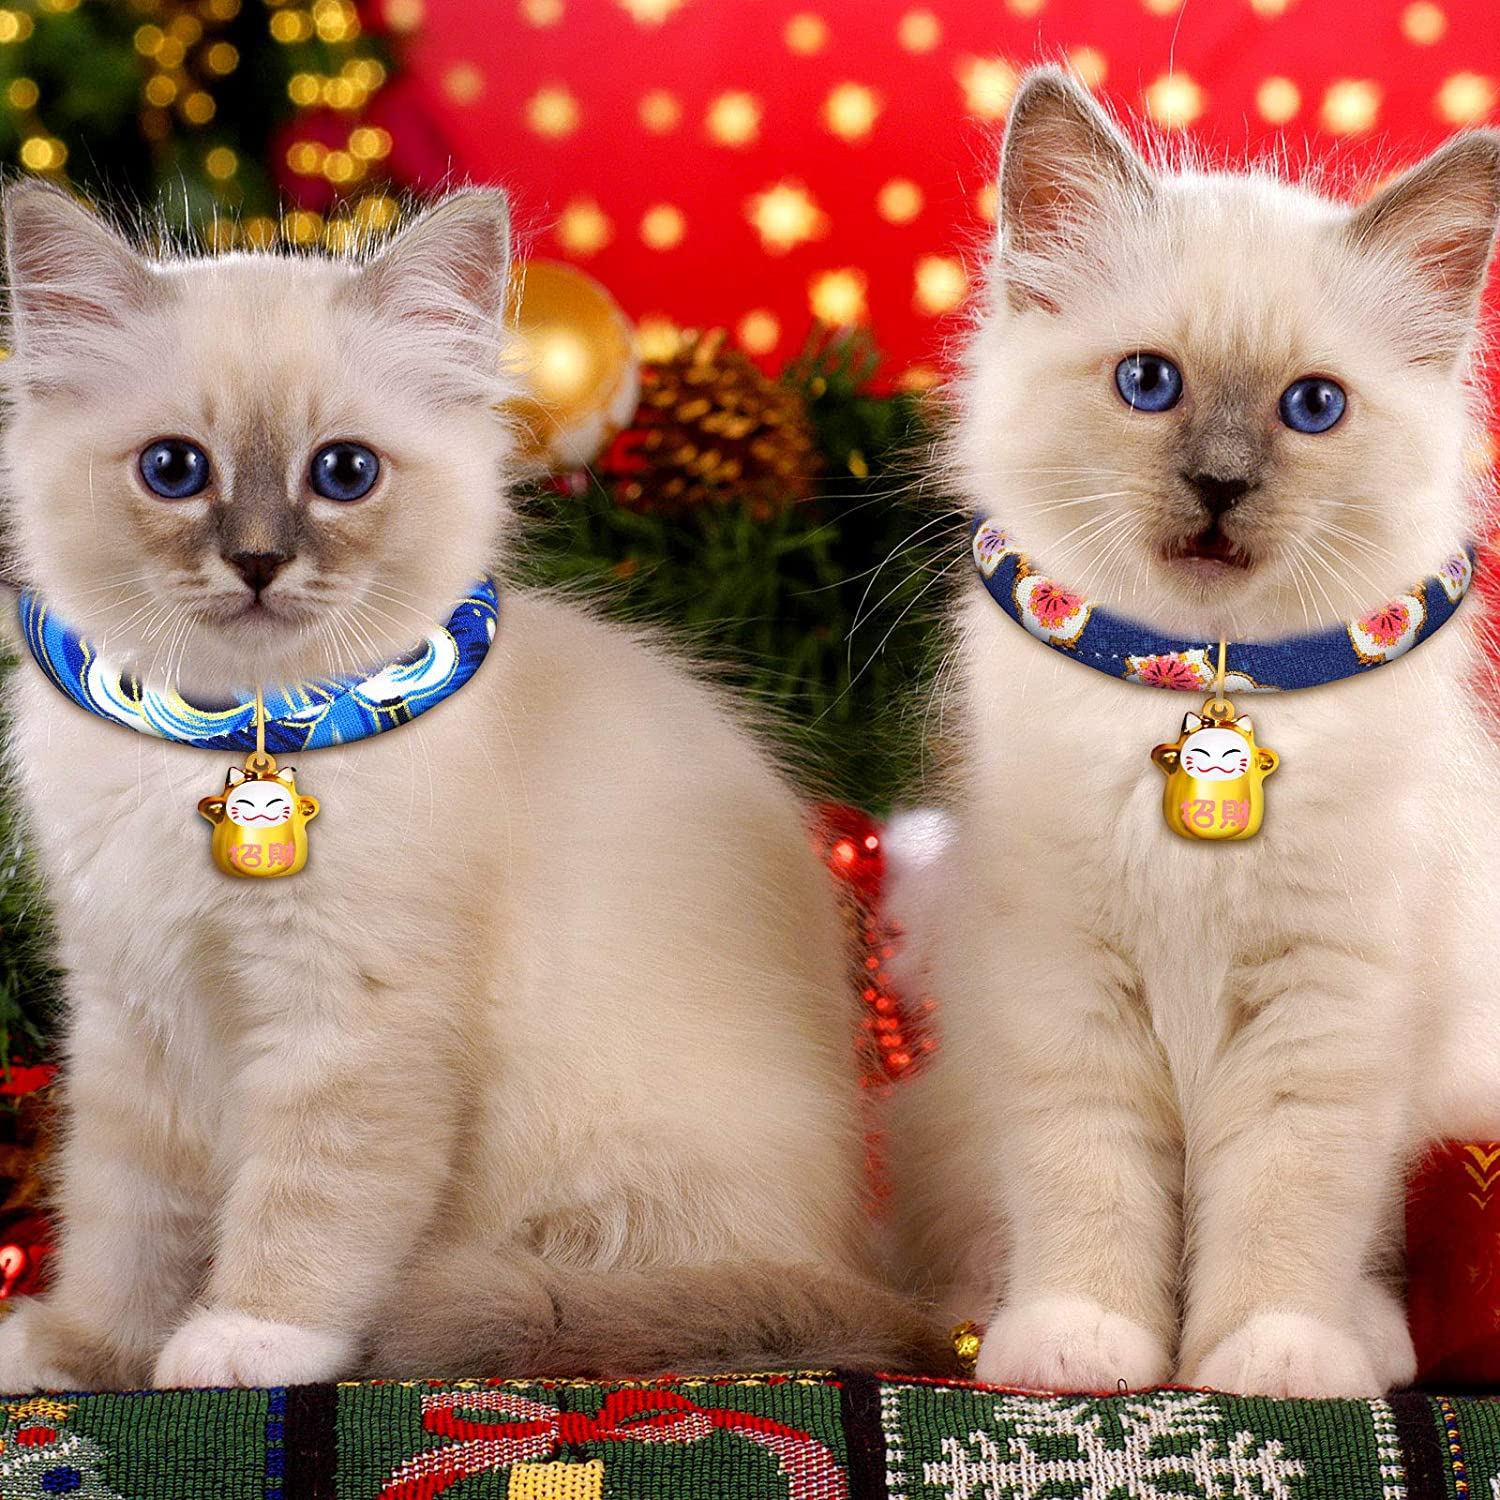 6 Pieces Japanese Chirimen Kitten Collar with Bell Japanese Kimono Cat Collar Japanese Style Adjustable Cat Collar with Fortune for Kitten Puppy Pet at Christmas Halloween New Year